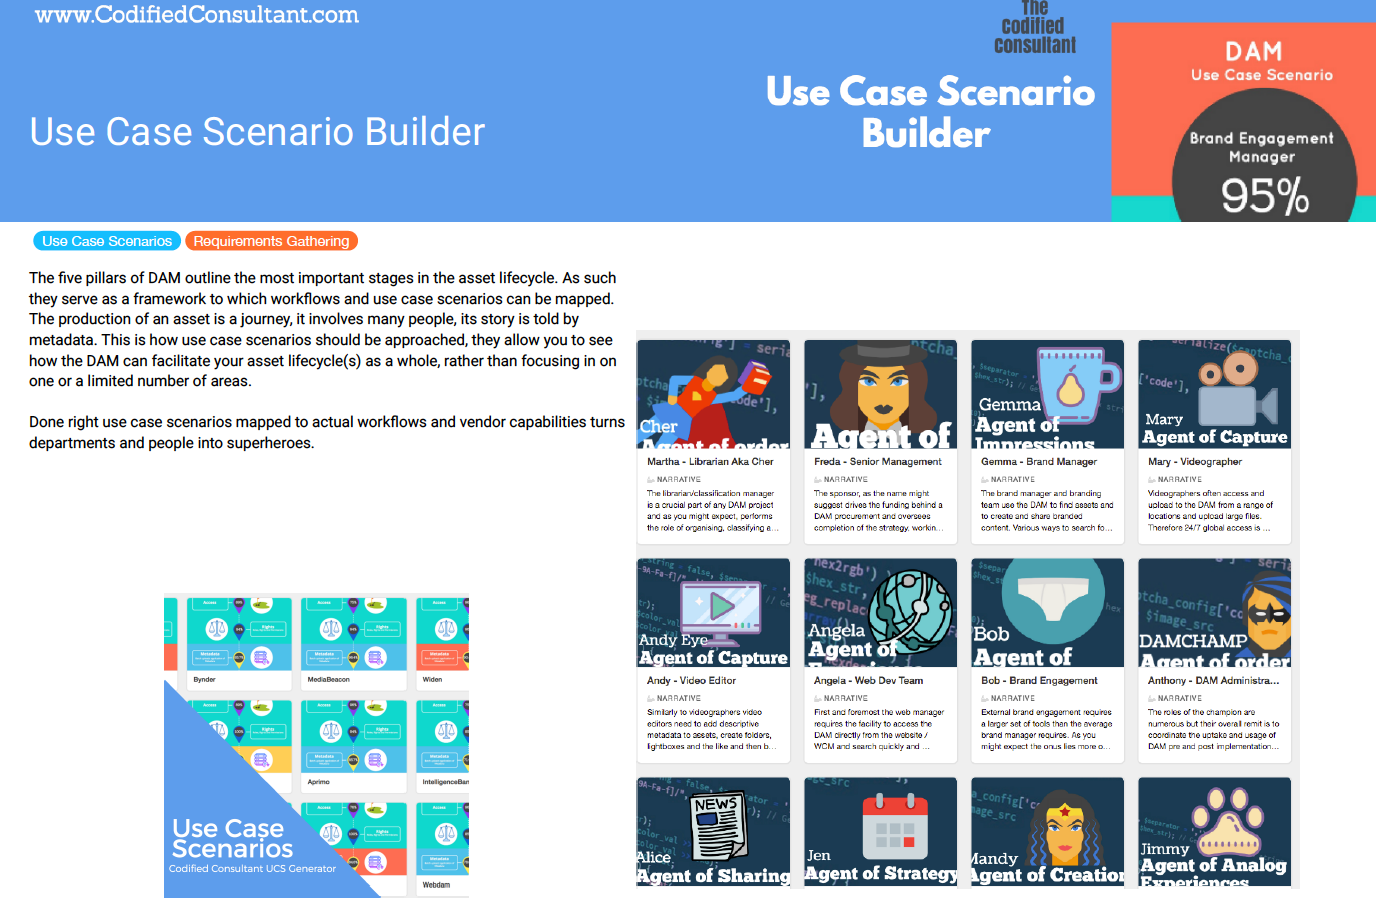 Step 5: Use Case Scenarios